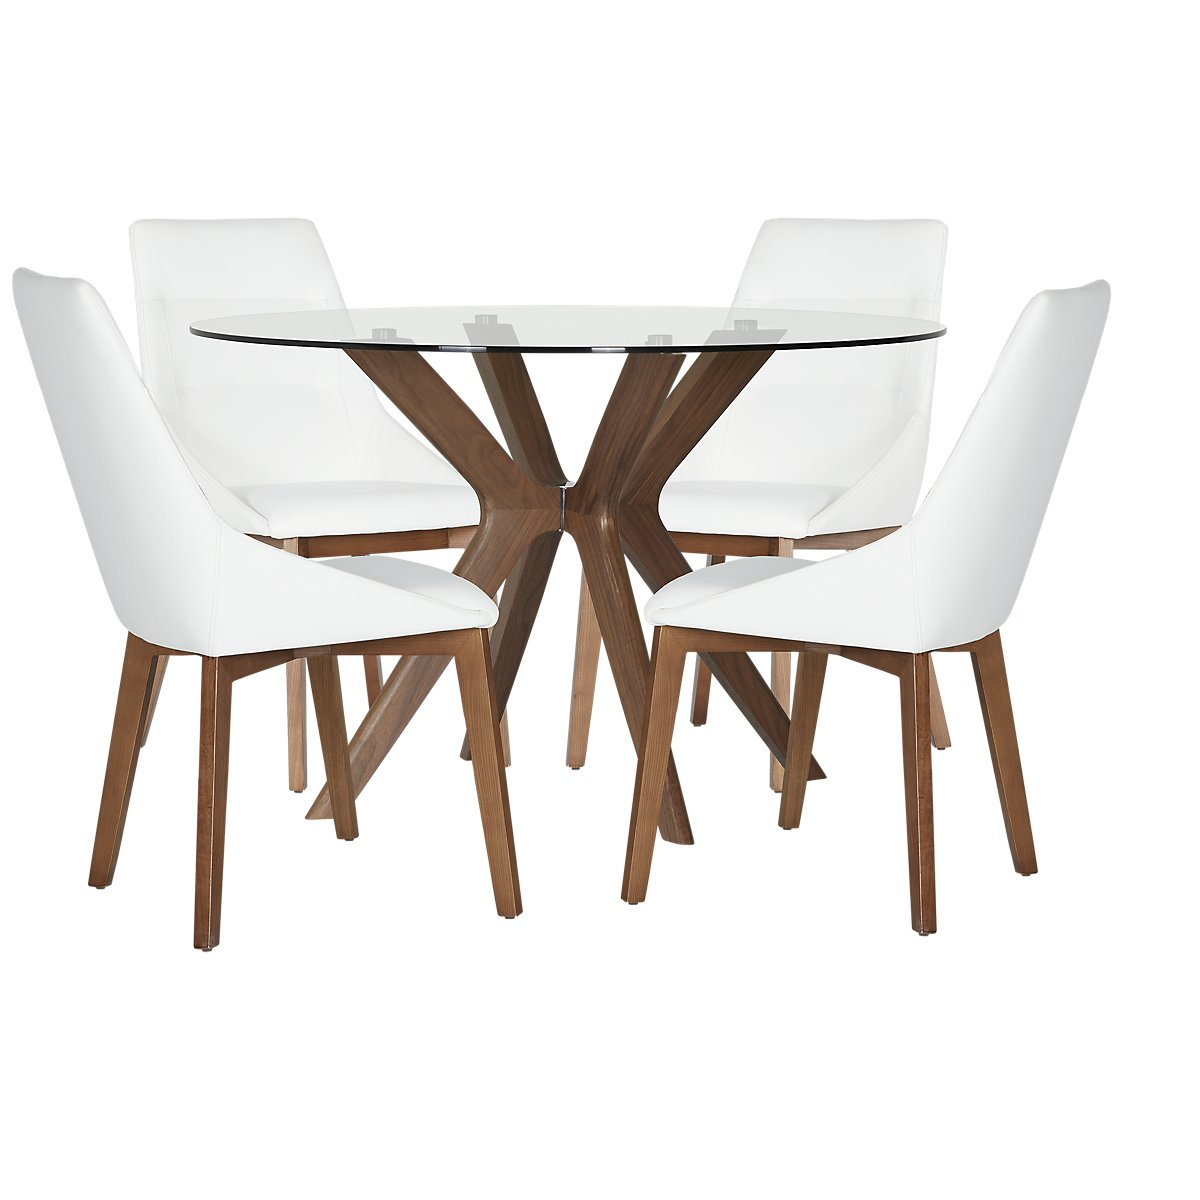 Fresno White Wood Table Amp 4 Upholstered Chairs